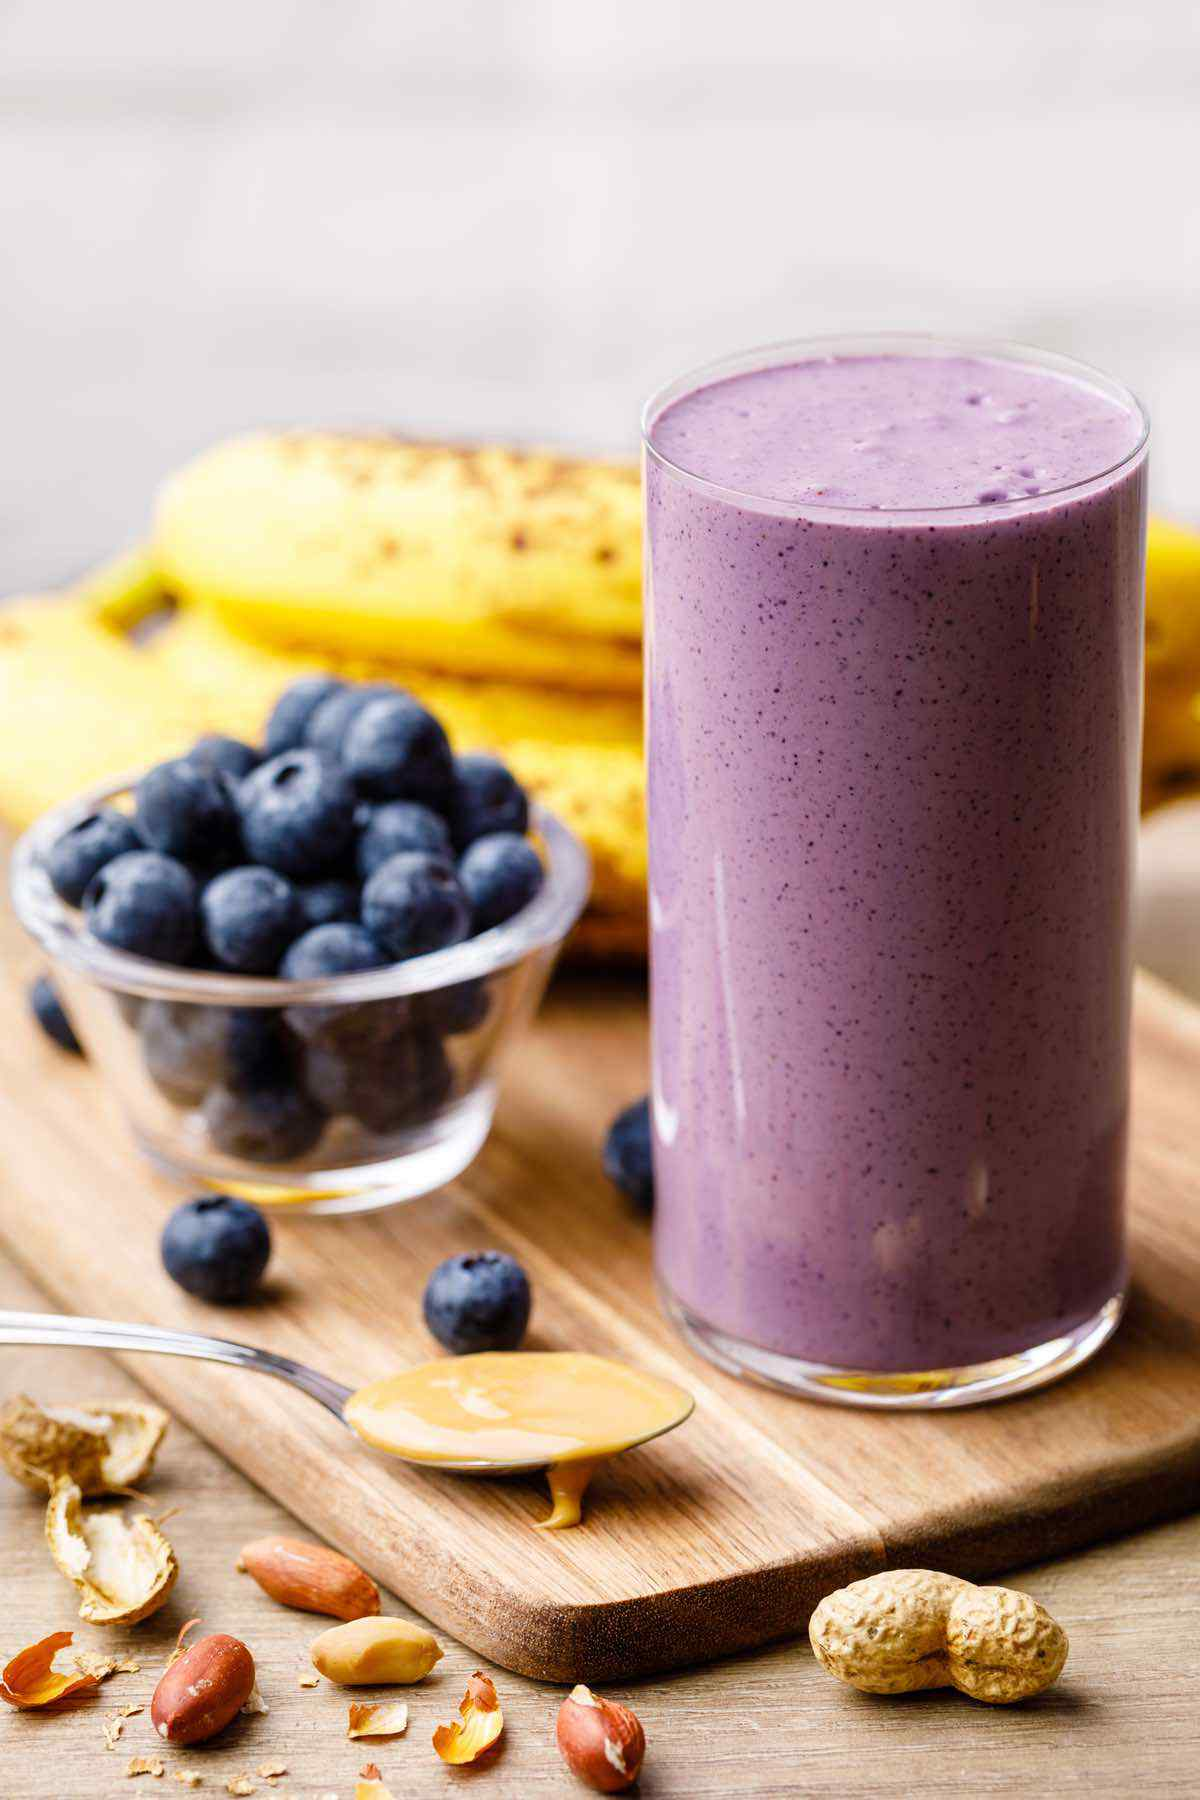 Peanut Butter and Blueberry Banana Smoothie